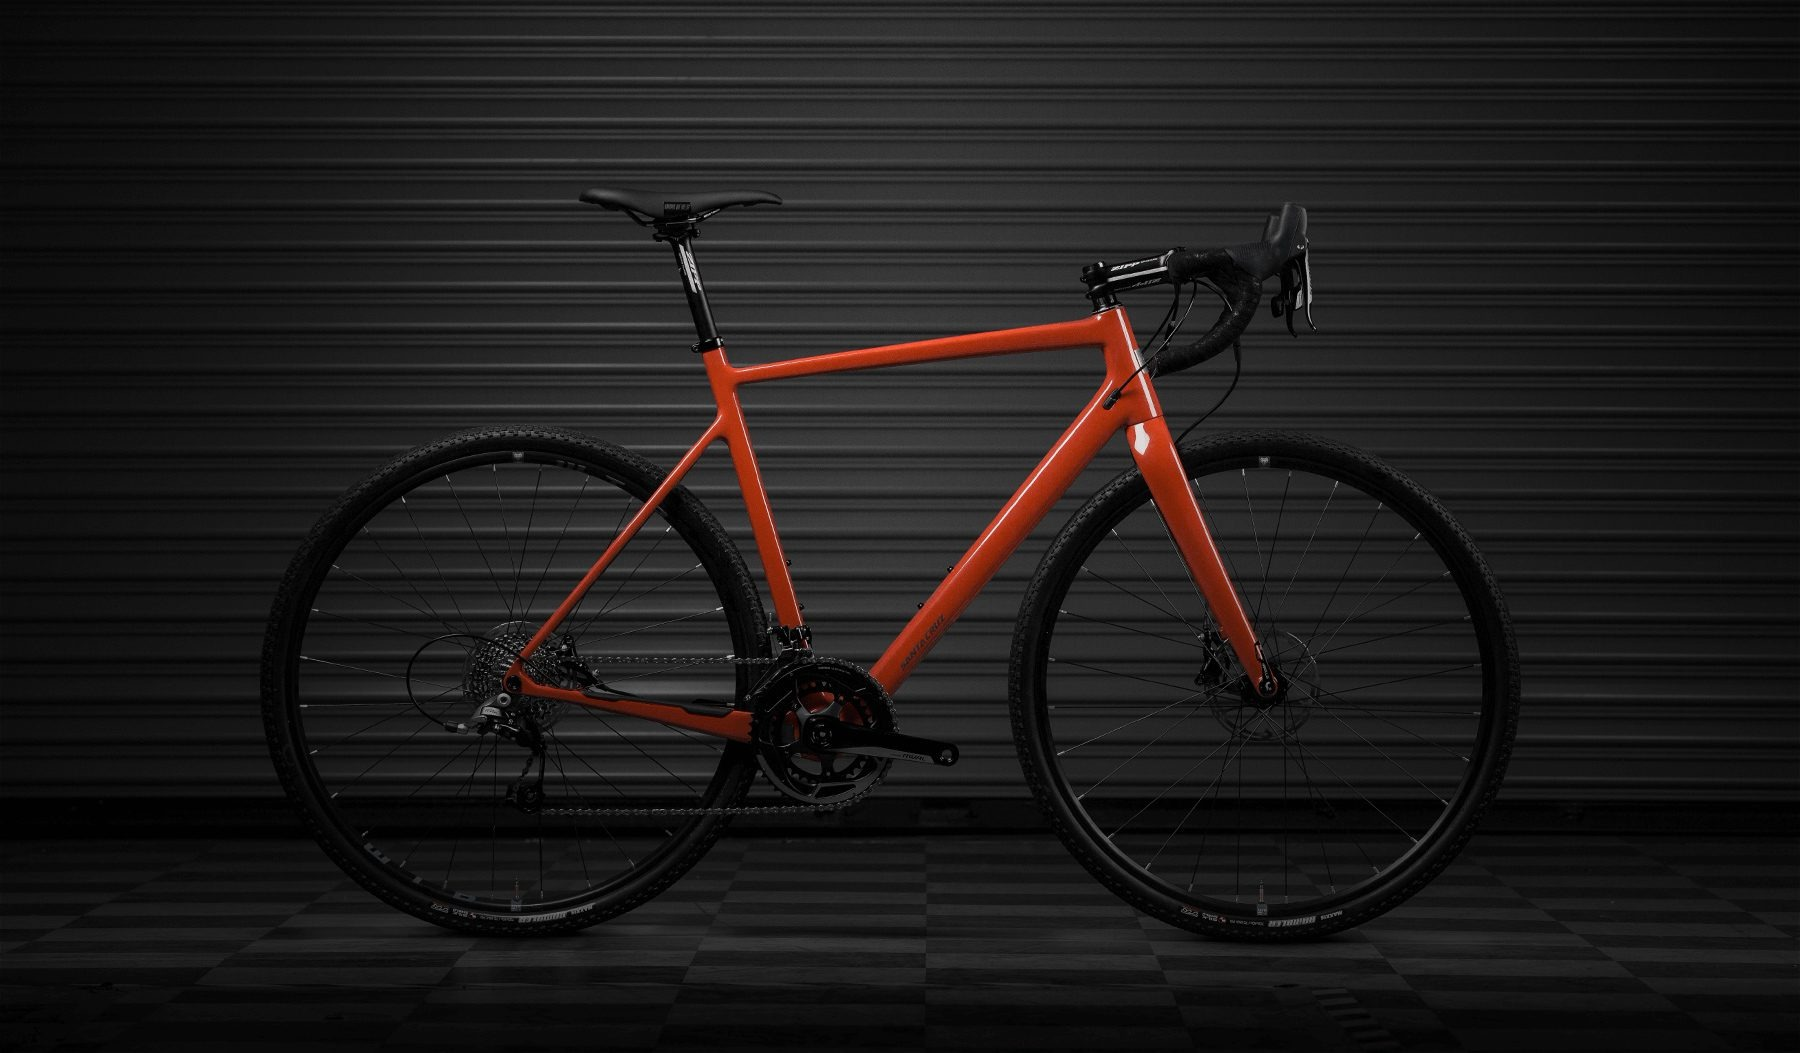 2018 Santa Cruz Stigmata Cyclocross Bike